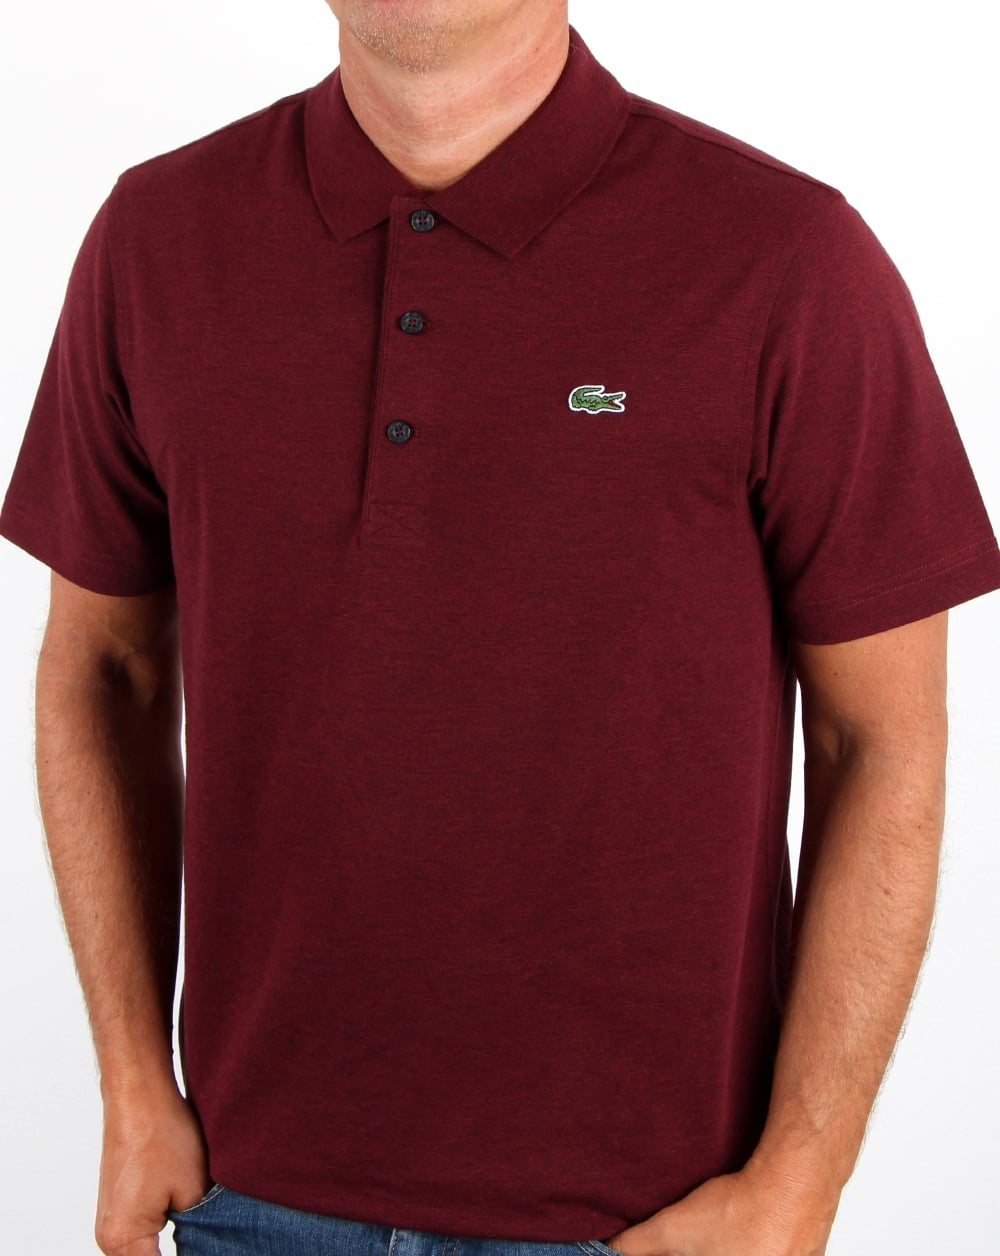 Lacoste ultra lightweight knit polo shirt grape vine chine men 39 s - Lacoste poloshirt weiay ...